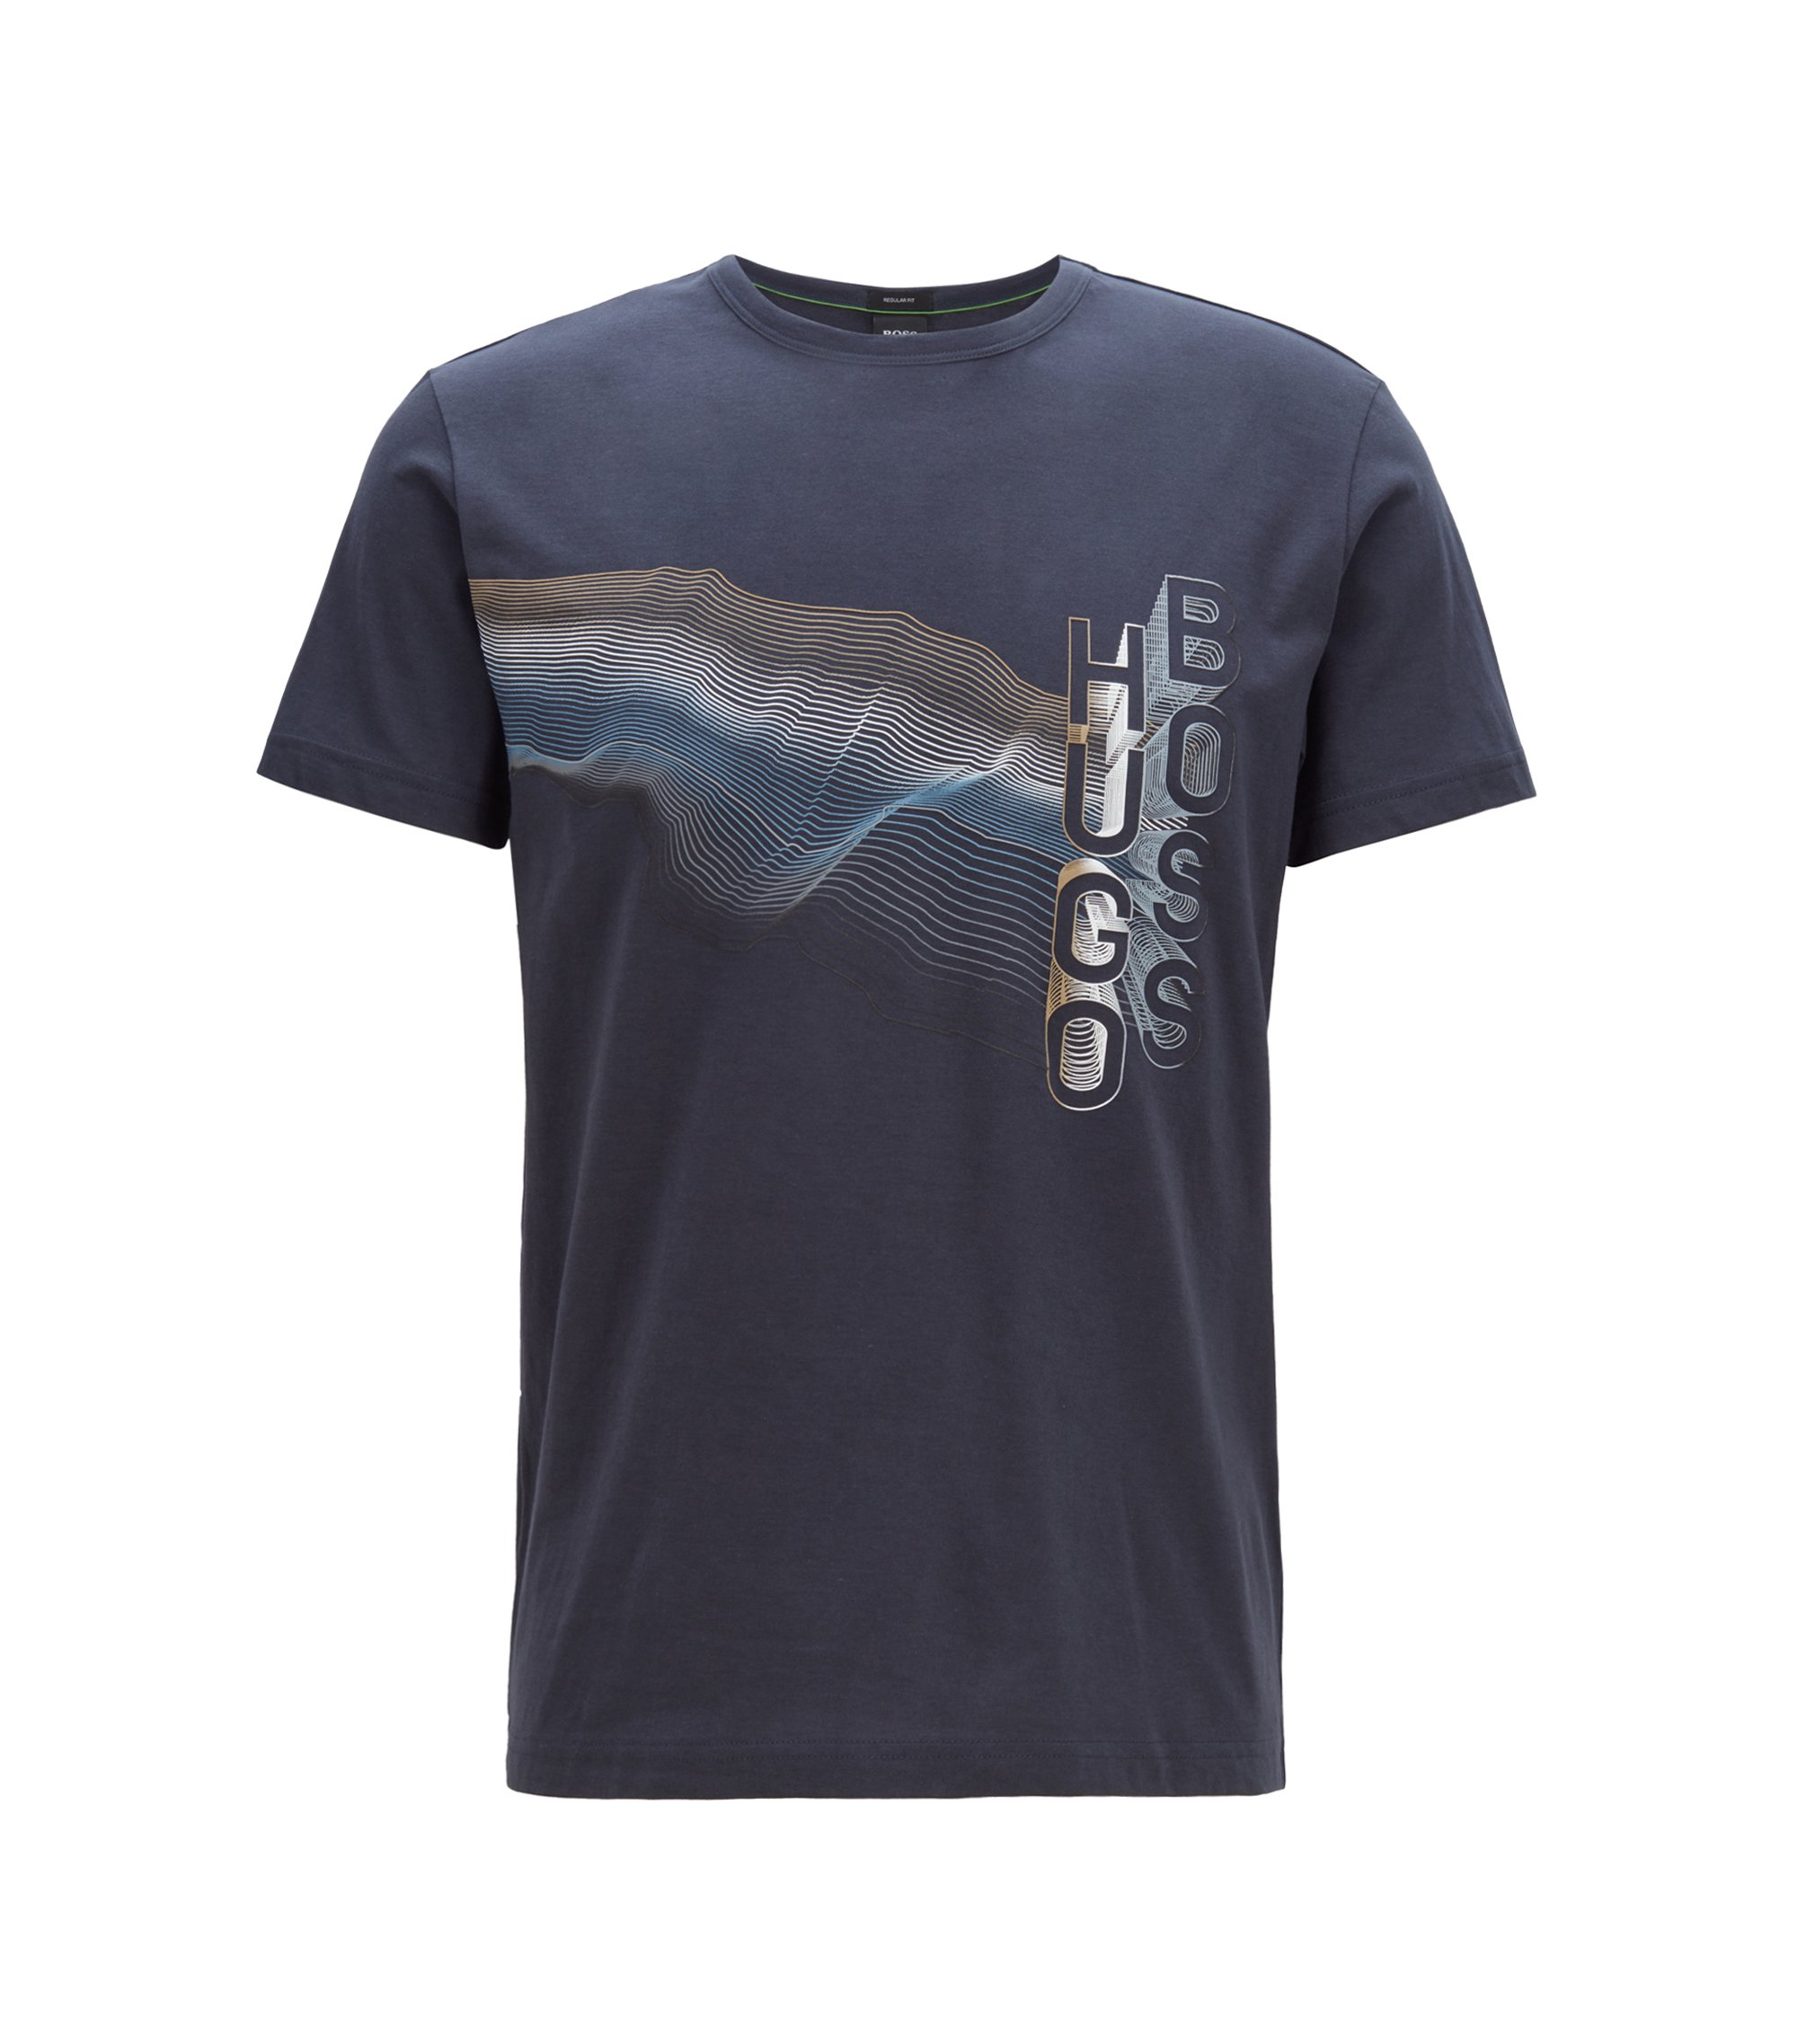 Crew-neck T-shirt in cotton with multicoloured graphic print, Dark Blue